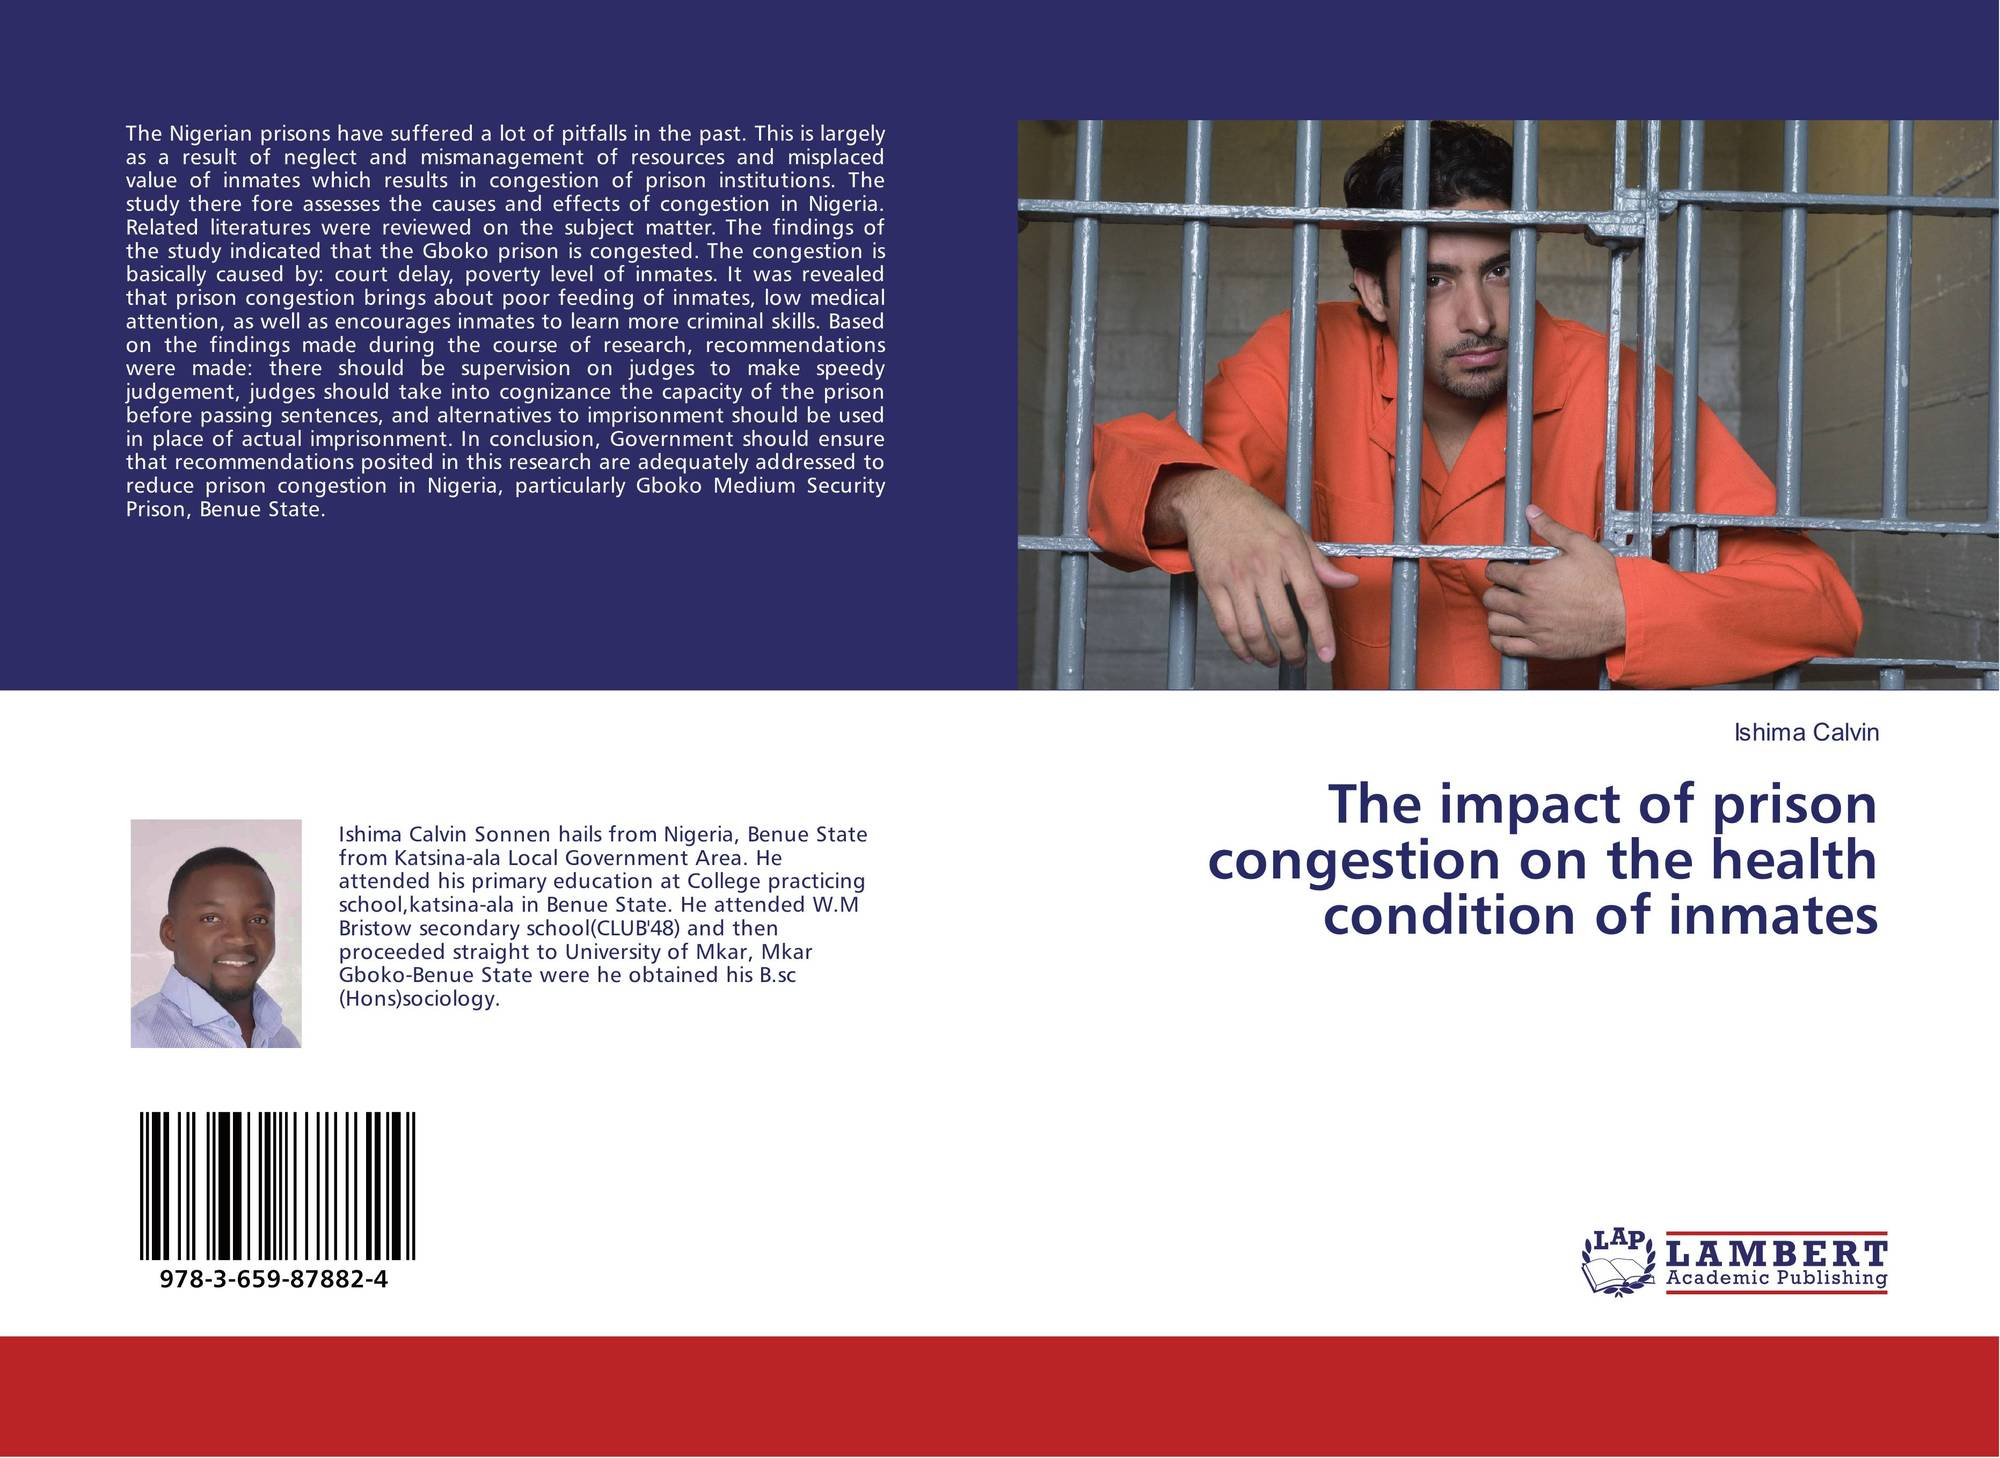 coping strategies of prison inmates literature review Literature review interpersonal relationships among male inmates much of the early literature concerning male inmates' interpersonal relationships and early researchers discussed how the code provided a strategy for coping with the pains of imprisonment (sykes and messinger 1960, tittle and.